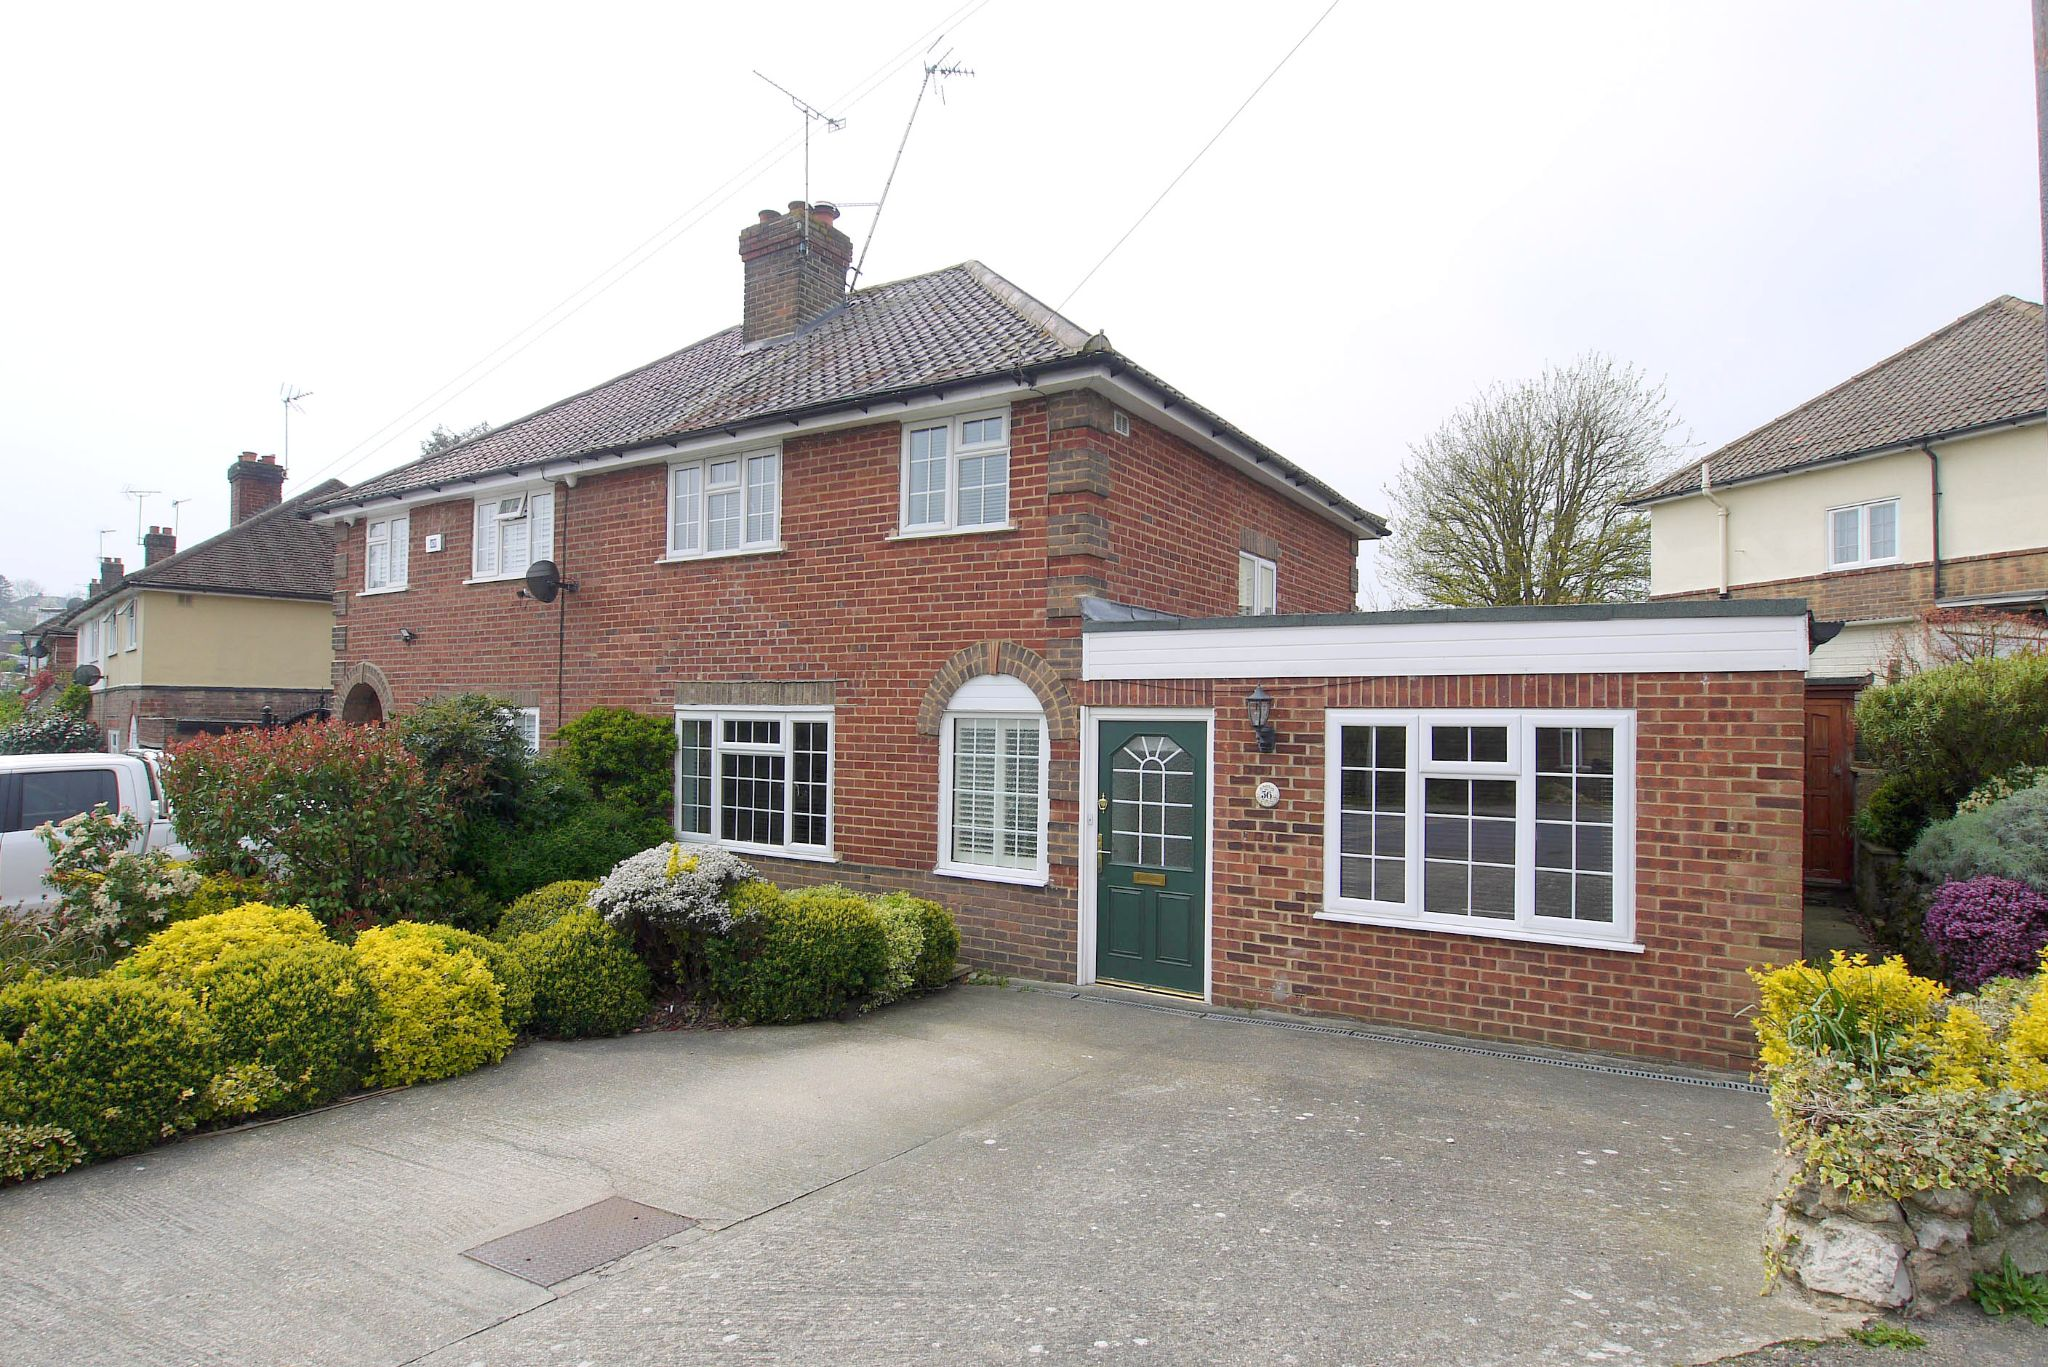 3 bedroom semi-detached house For Sale in Sevenoaks - Photograph 1